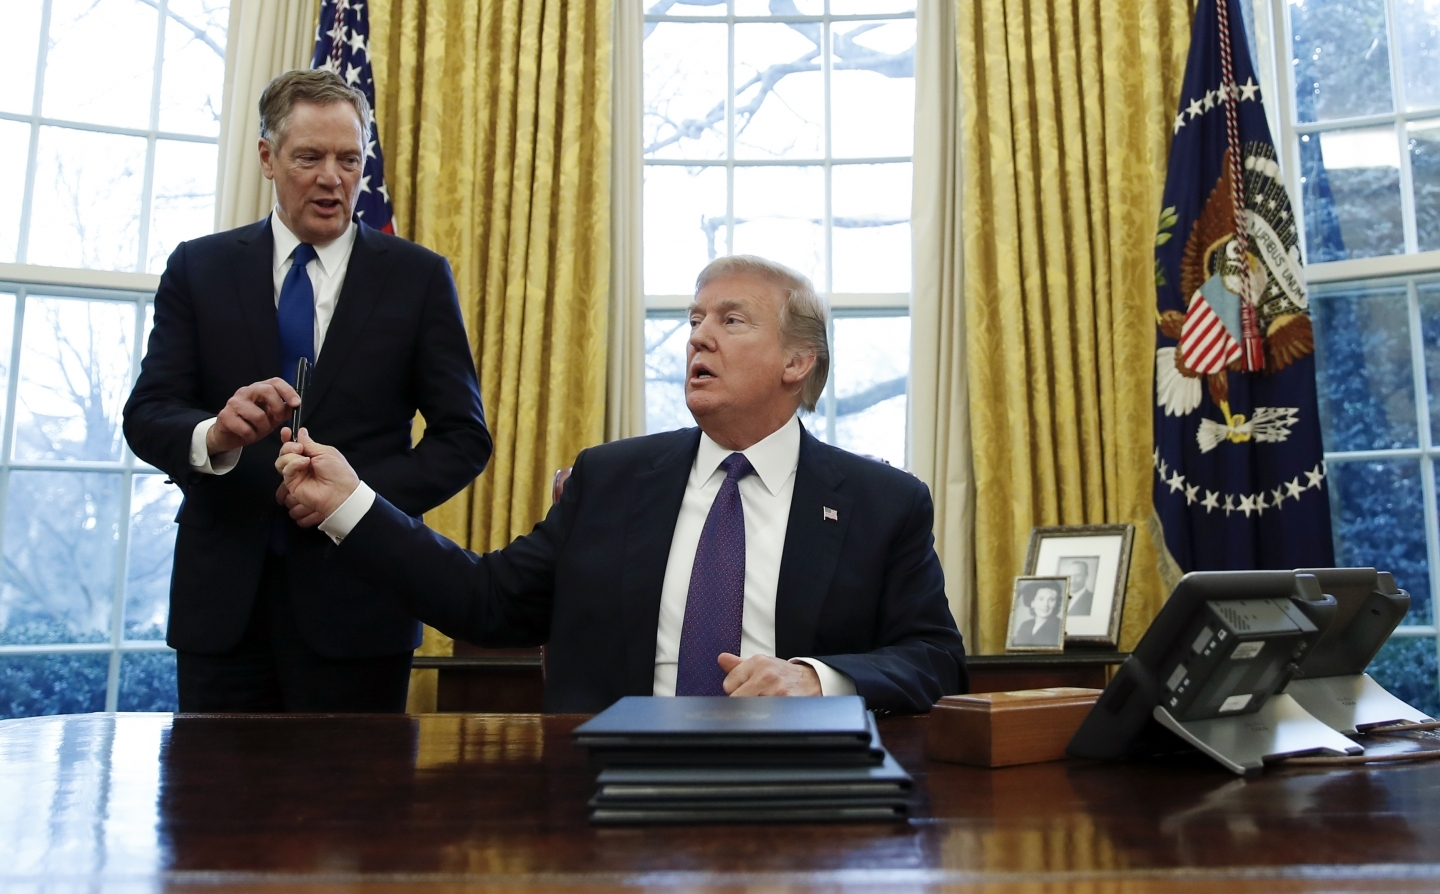 President Donald Trump, hands the pen he used to sign Section 201 actions to US Trade Representative Robert Lighthizer. (AP Photo/Carolyn Kaster)